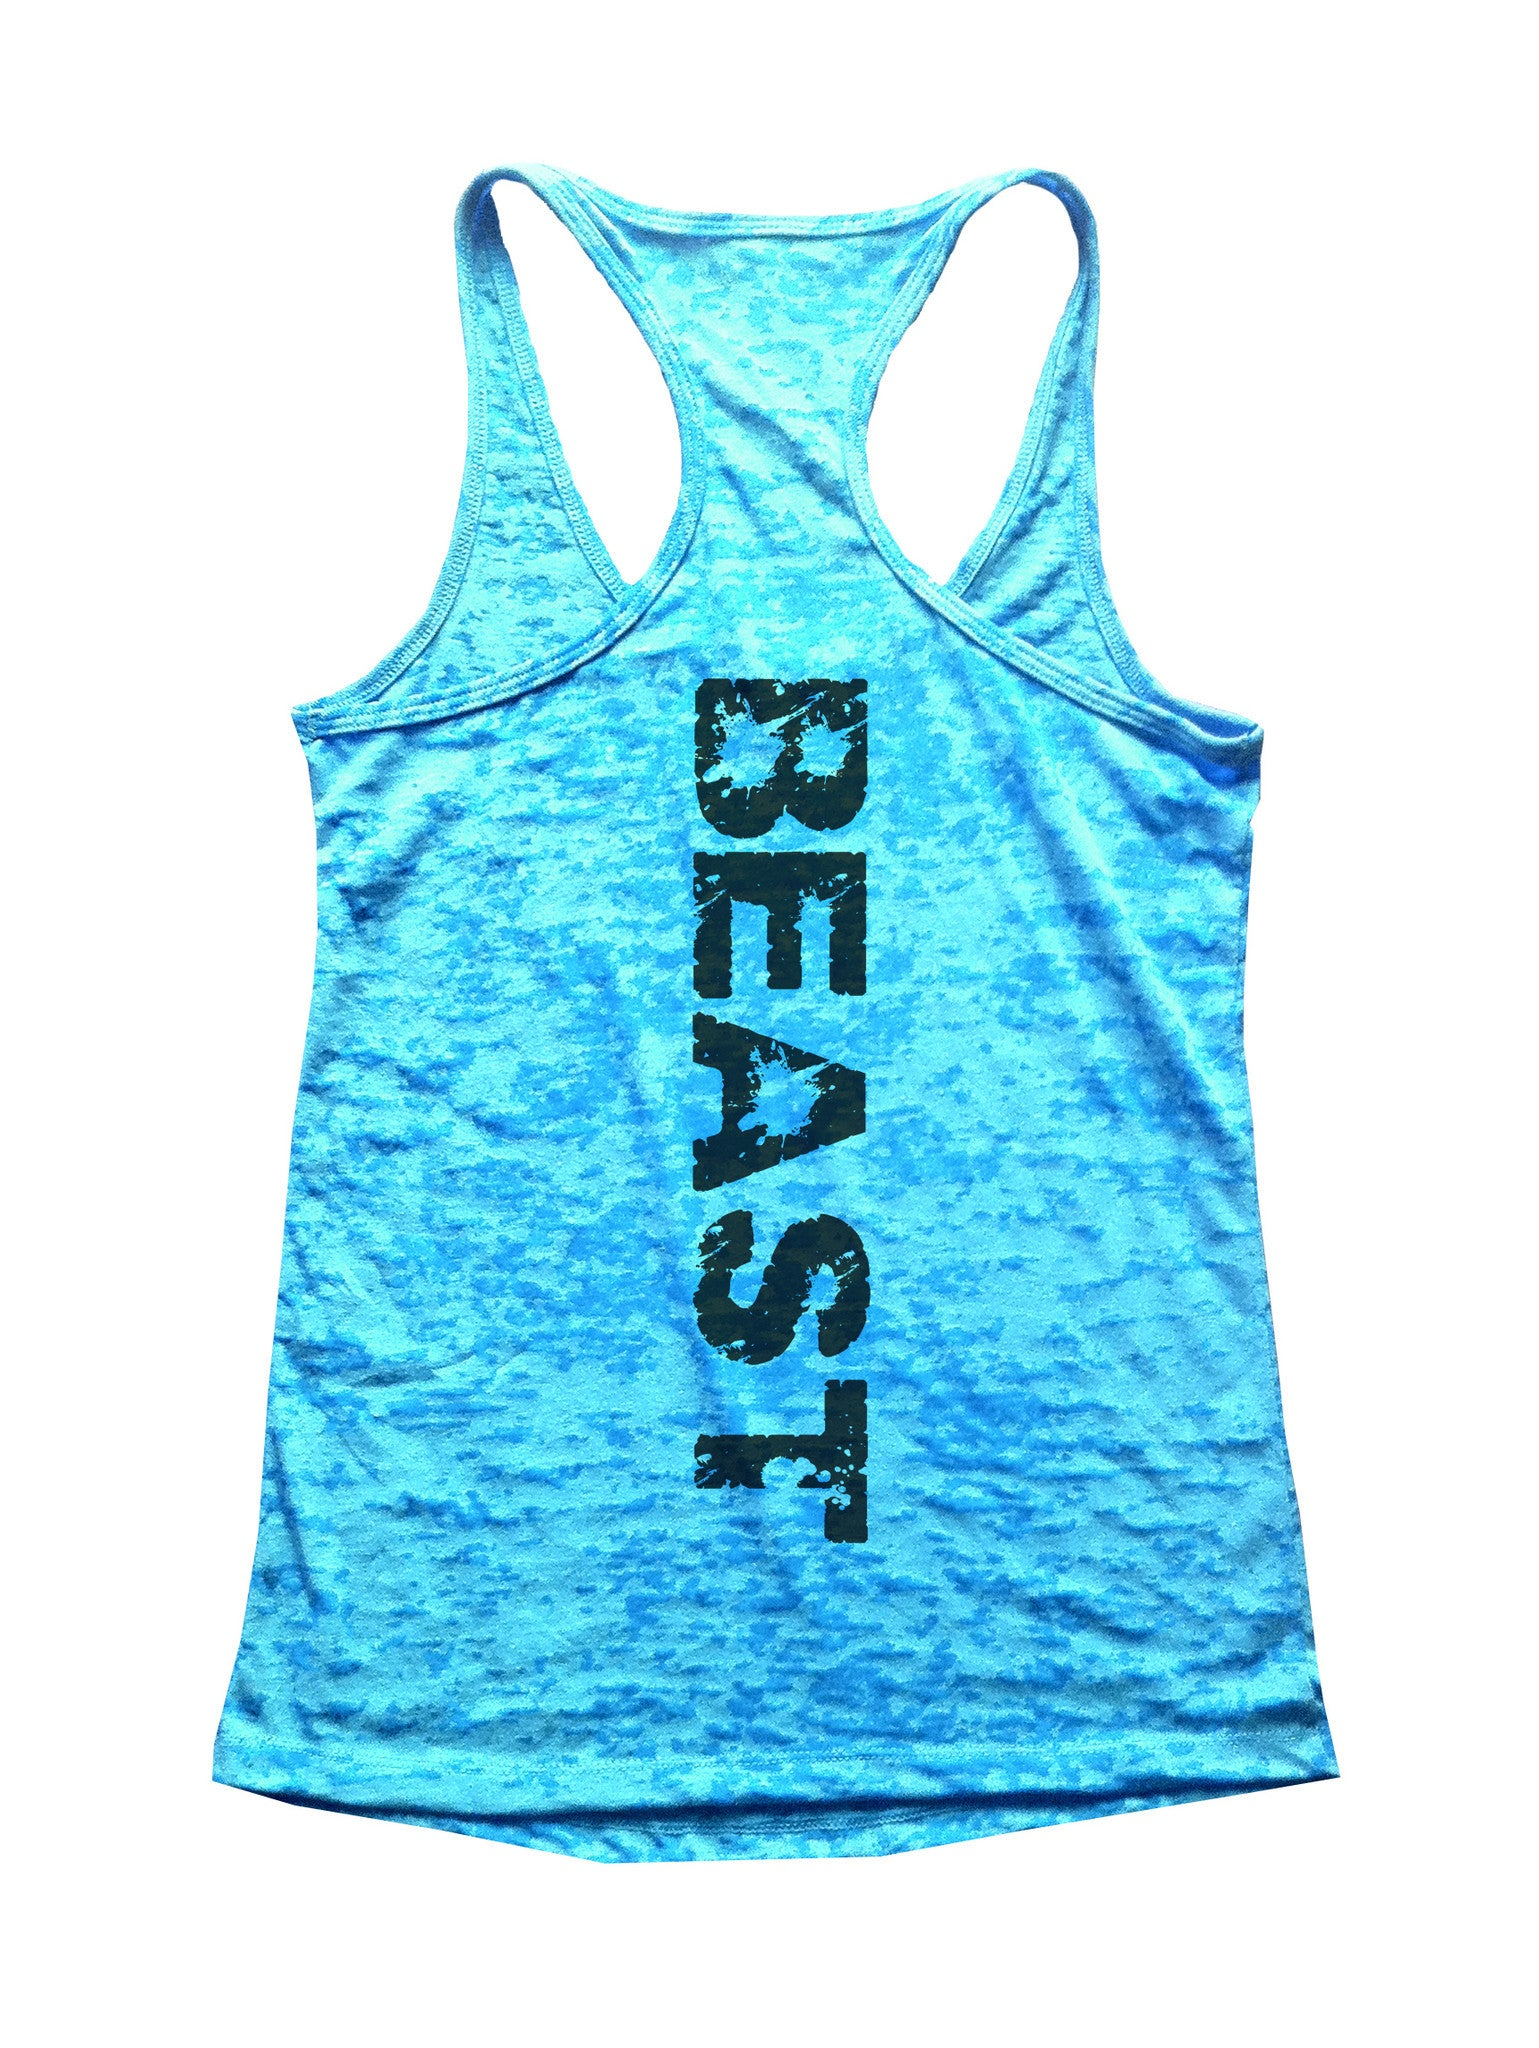 Beast Printed On Back Womens Motivational Burnout Tank Top By BurnoutTankTops.com - 538 - Funny Shirts Tank Tops Burnouts and Triblends  - 1